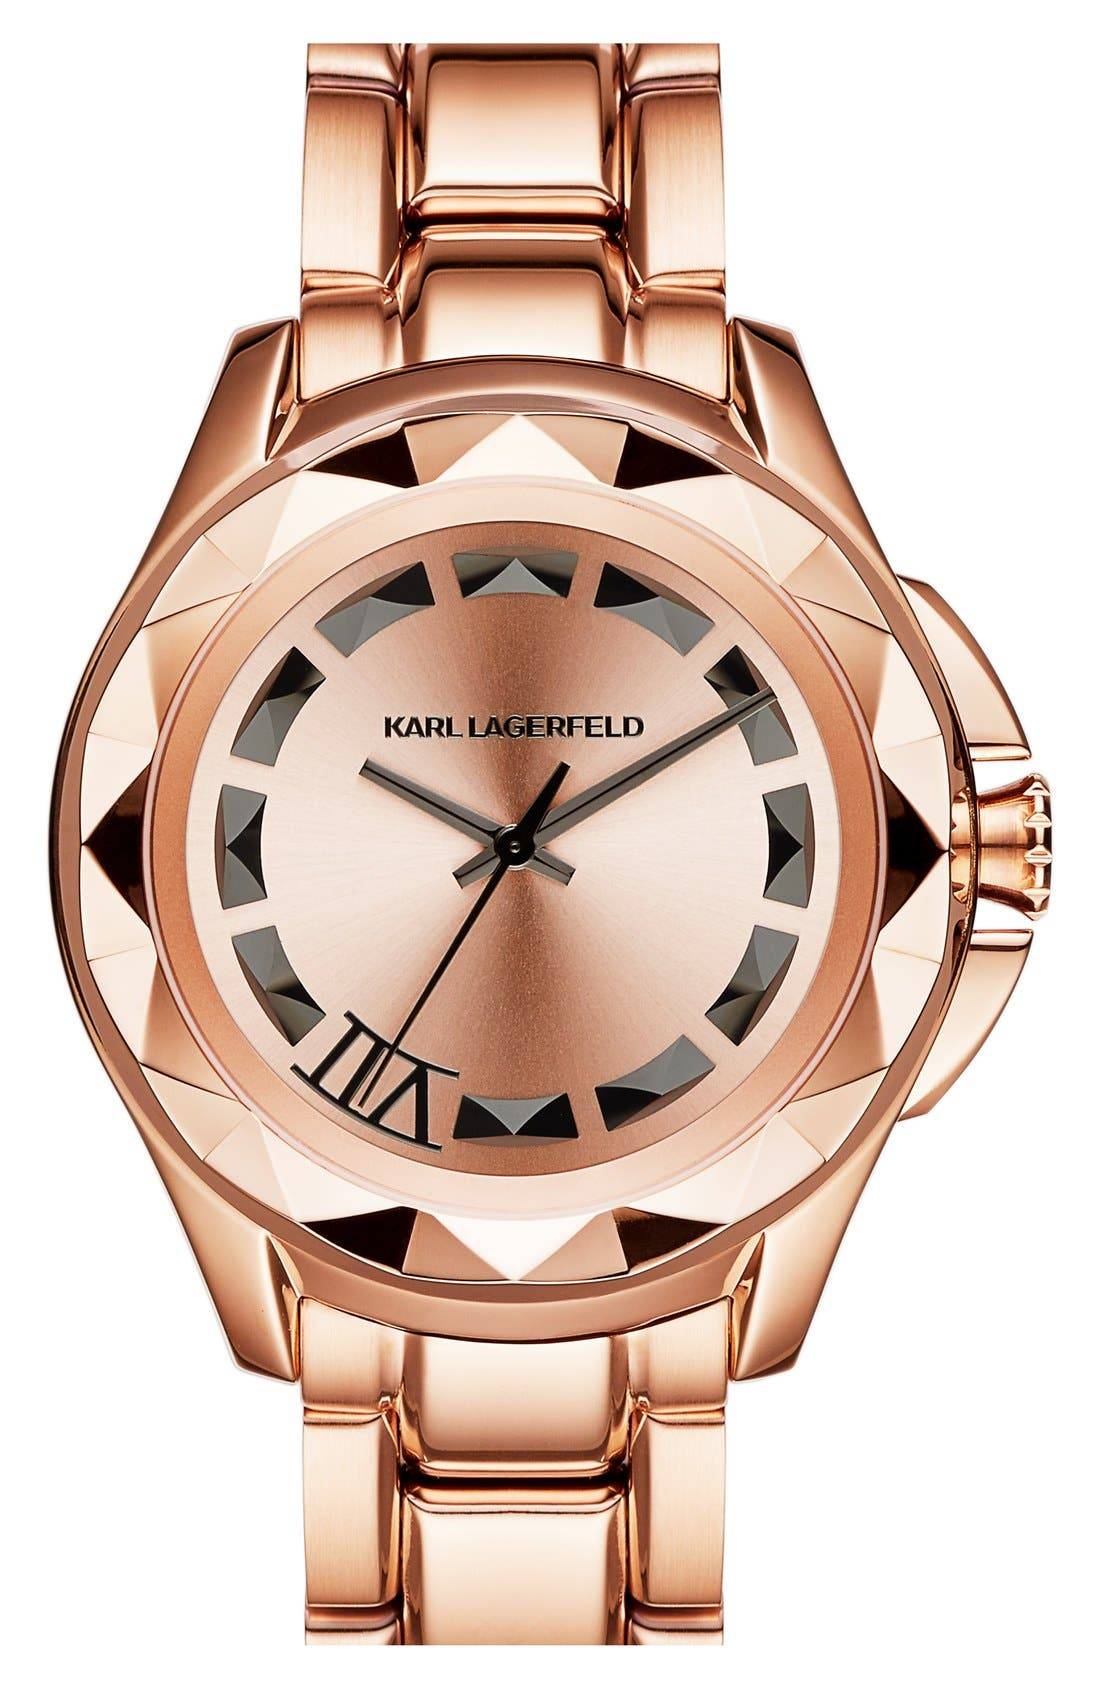 Main Image - KARL LAGERFELD '7' Faceted Bezel Bracelet Watch, 44mm (Nordstrom Online Exclusive)